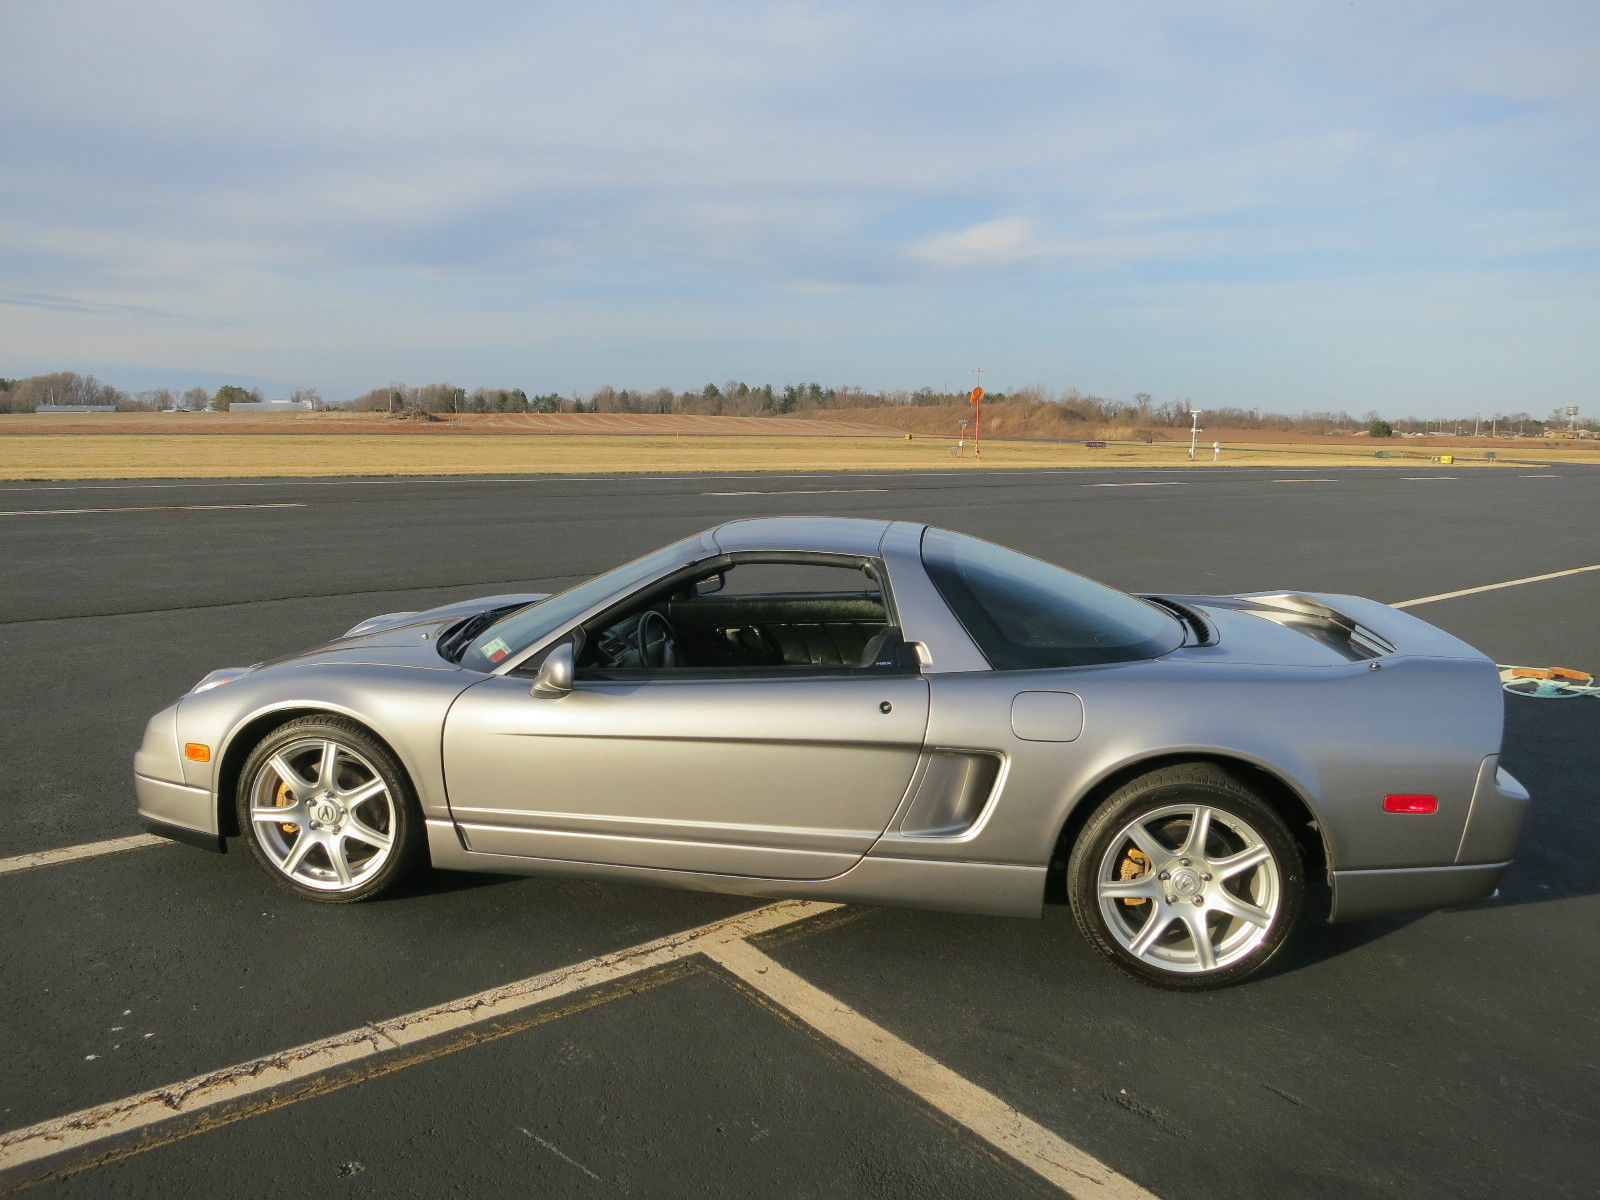 Acura NSX Targa With Only Miles For Sale On EBay - Acura nsx for sale cheap